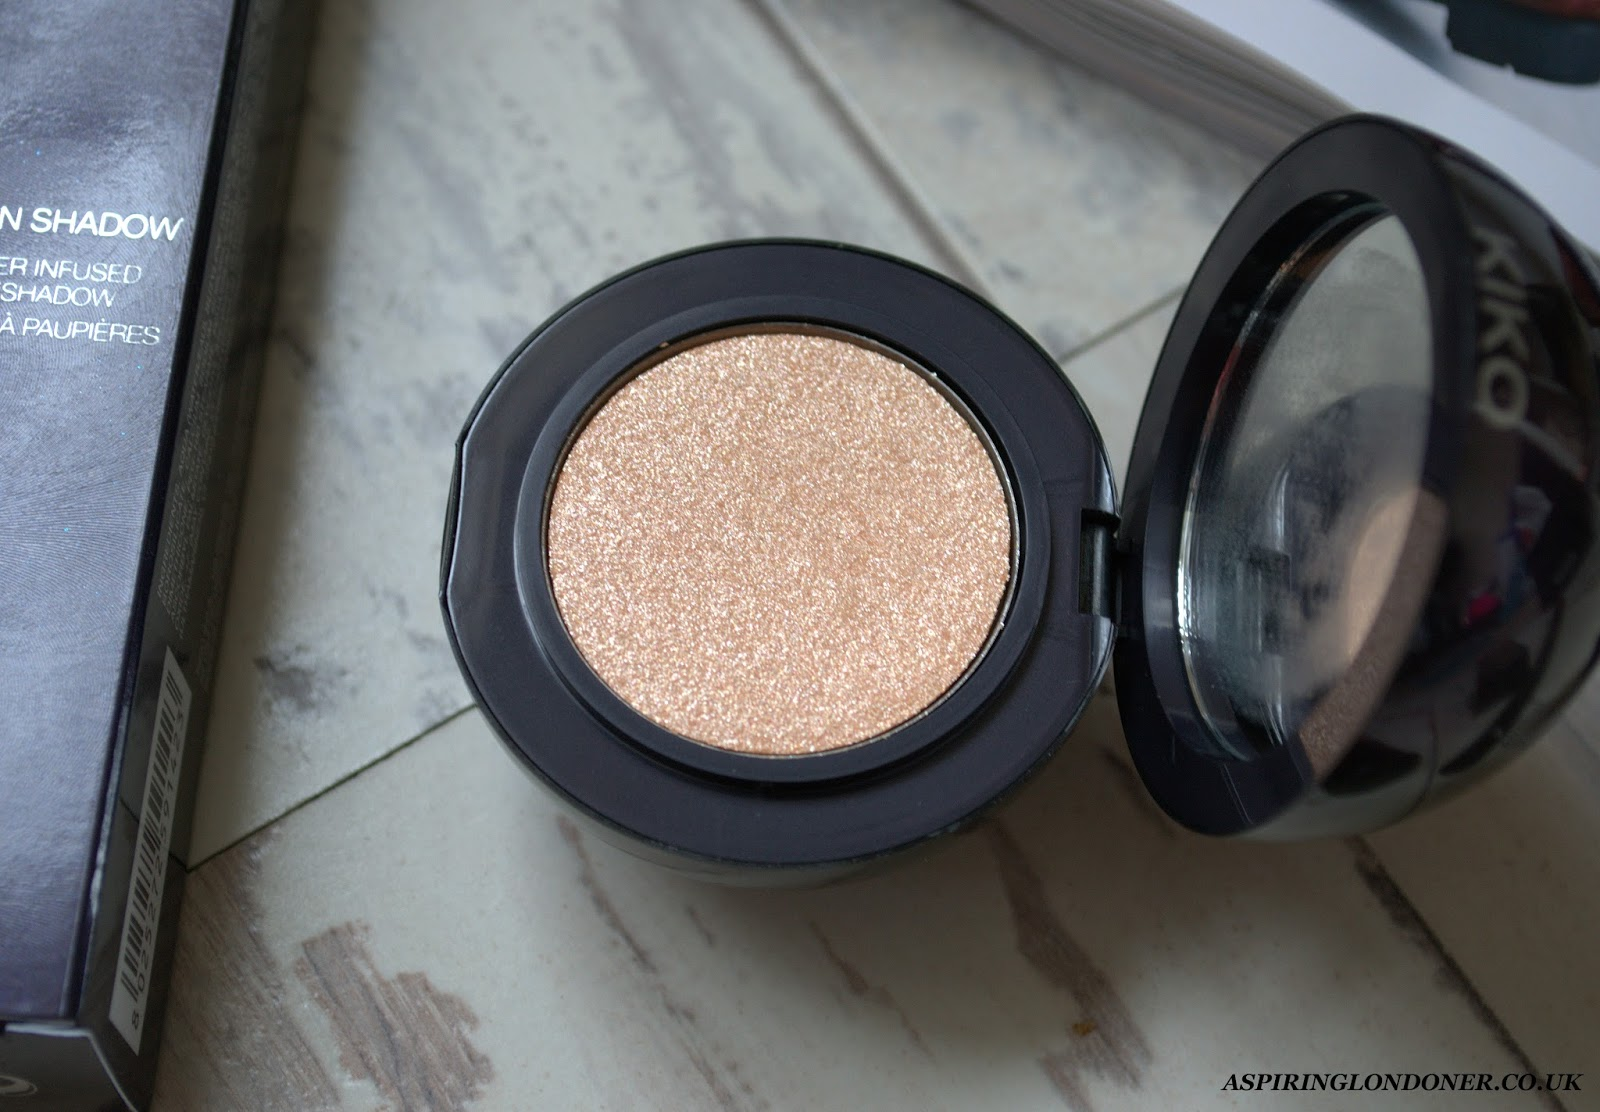 Kiko Midnight Siren Cream Radiance Highlighter Twilight Gold Review Swatch - Aspiring Londoner